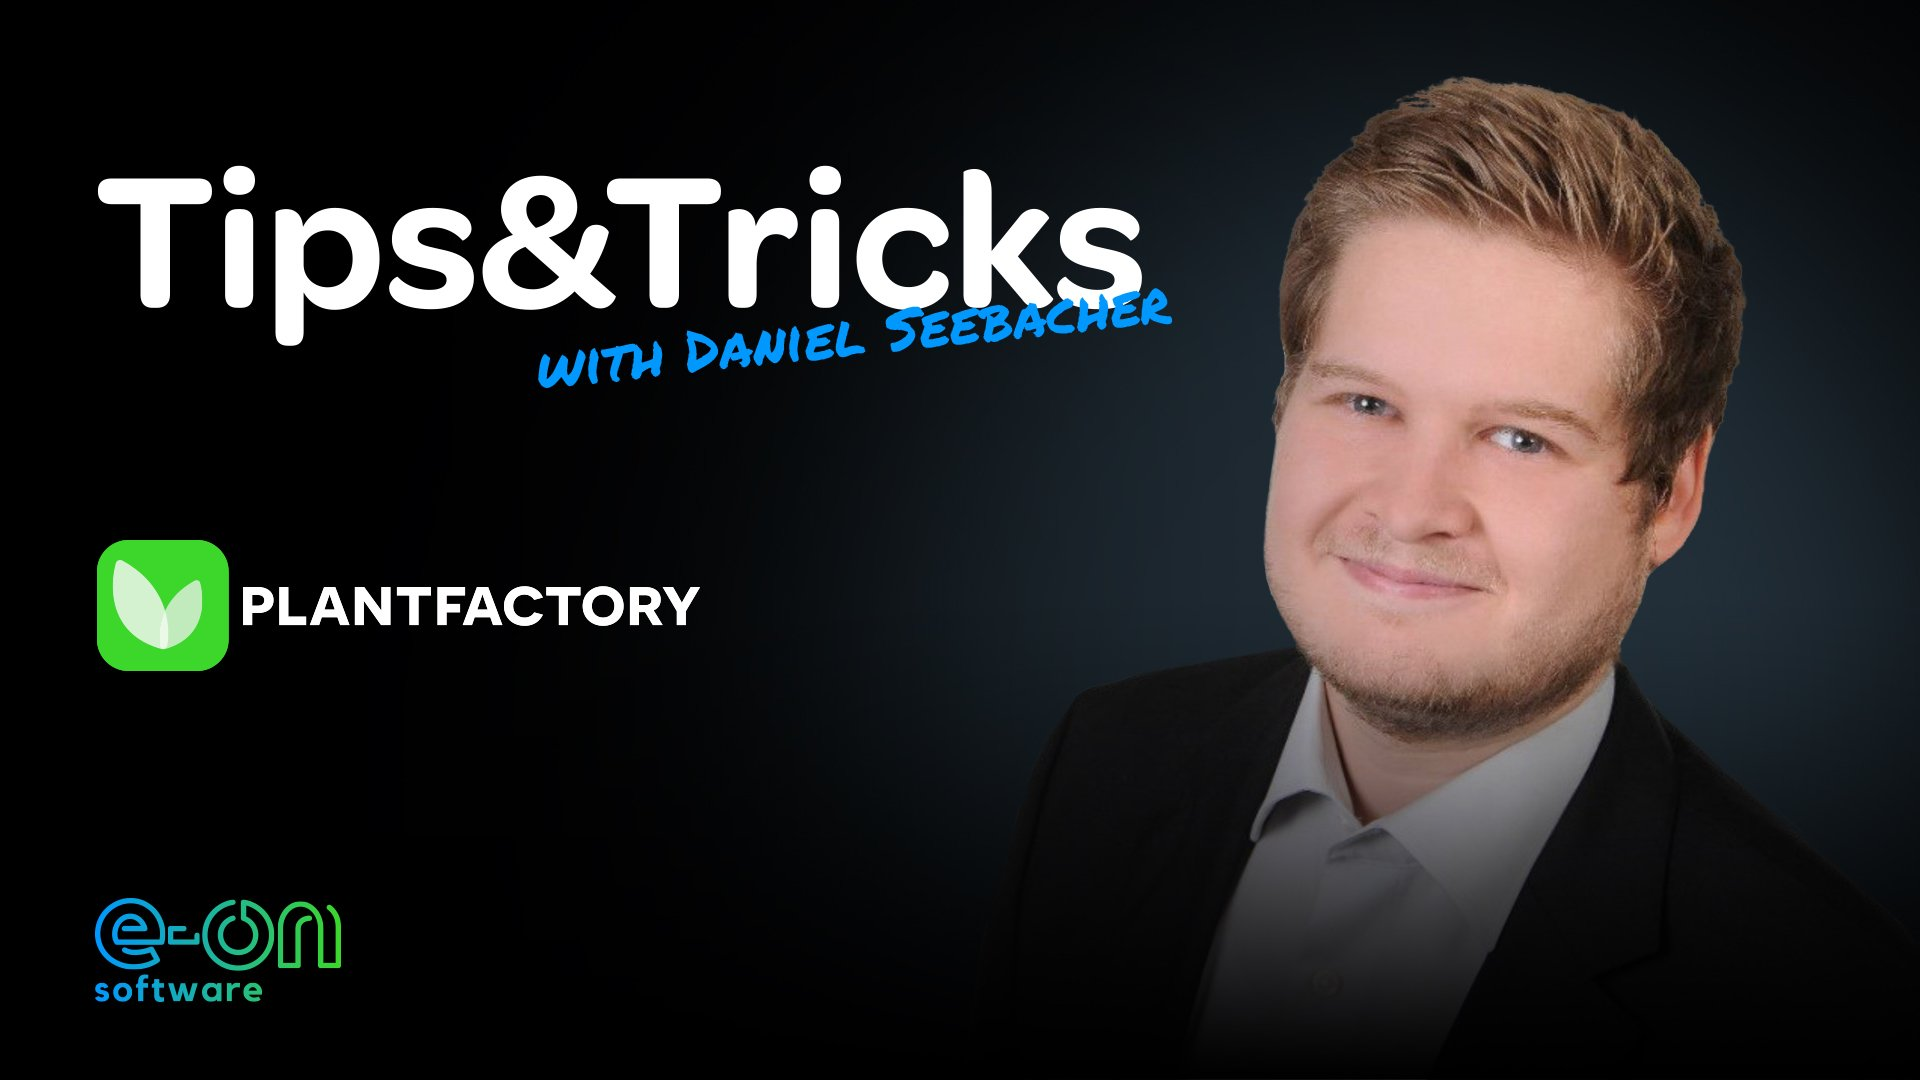 Tips&Tricks with Daniel Seebacher